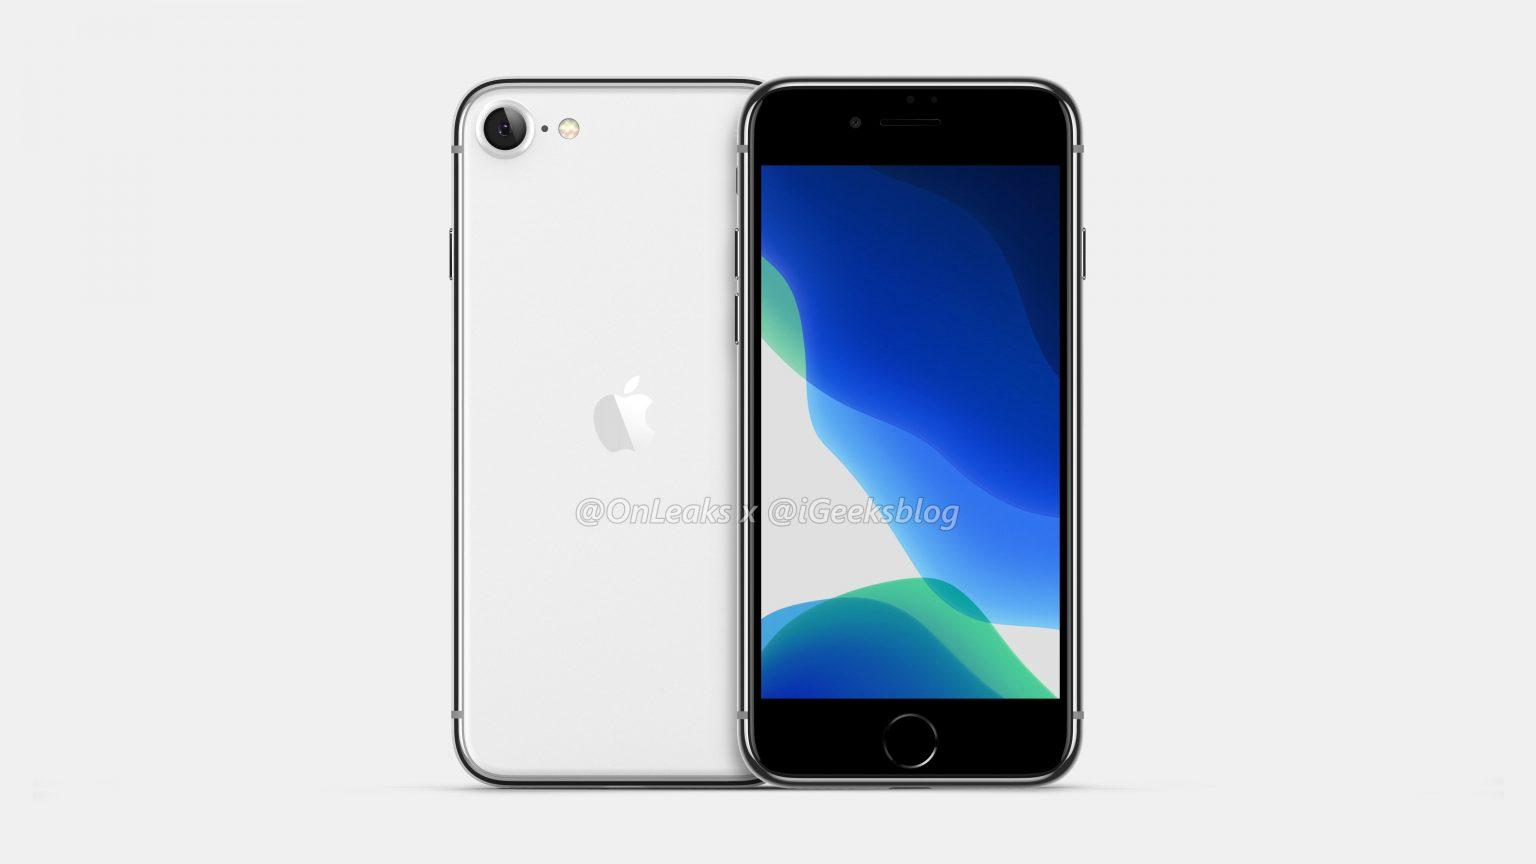 iPhone 9 iPhone SE 2 render